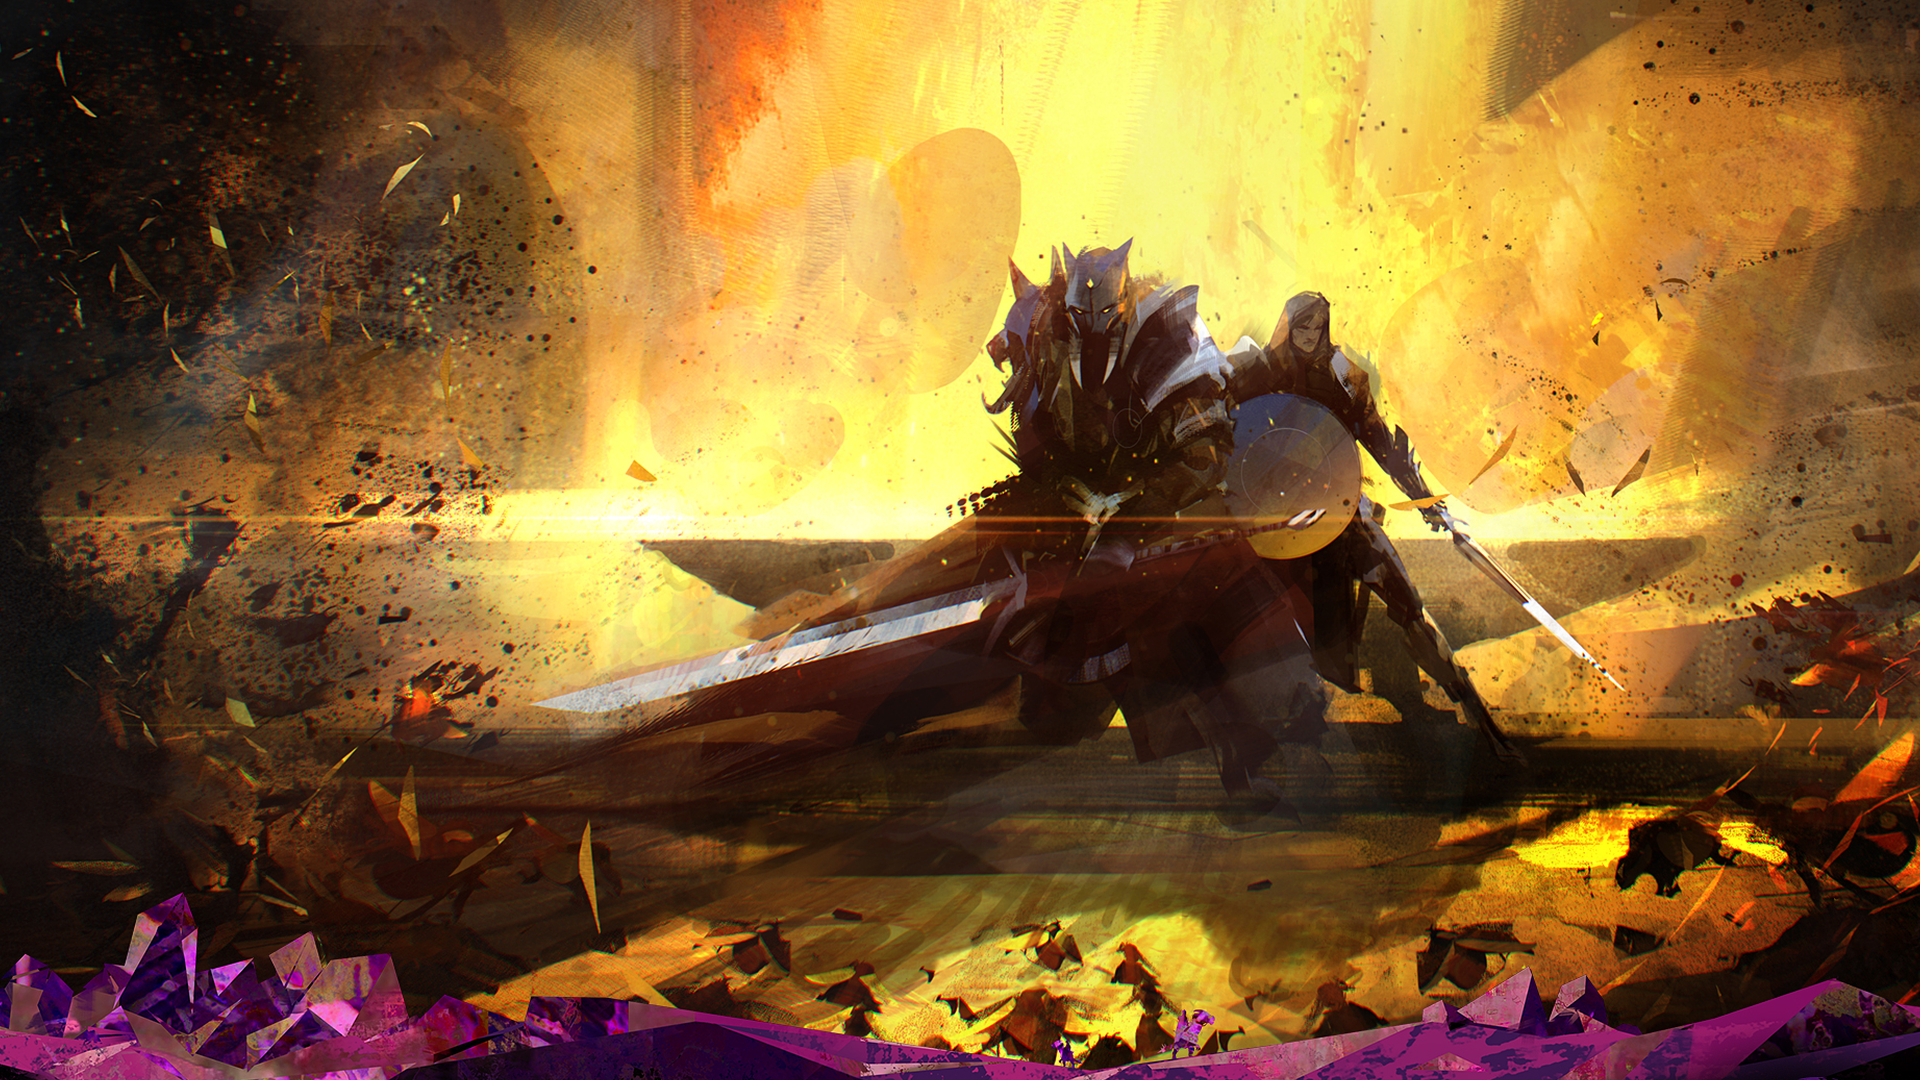 Six years on, Guild Wars 2 is still going strong – what's its secret